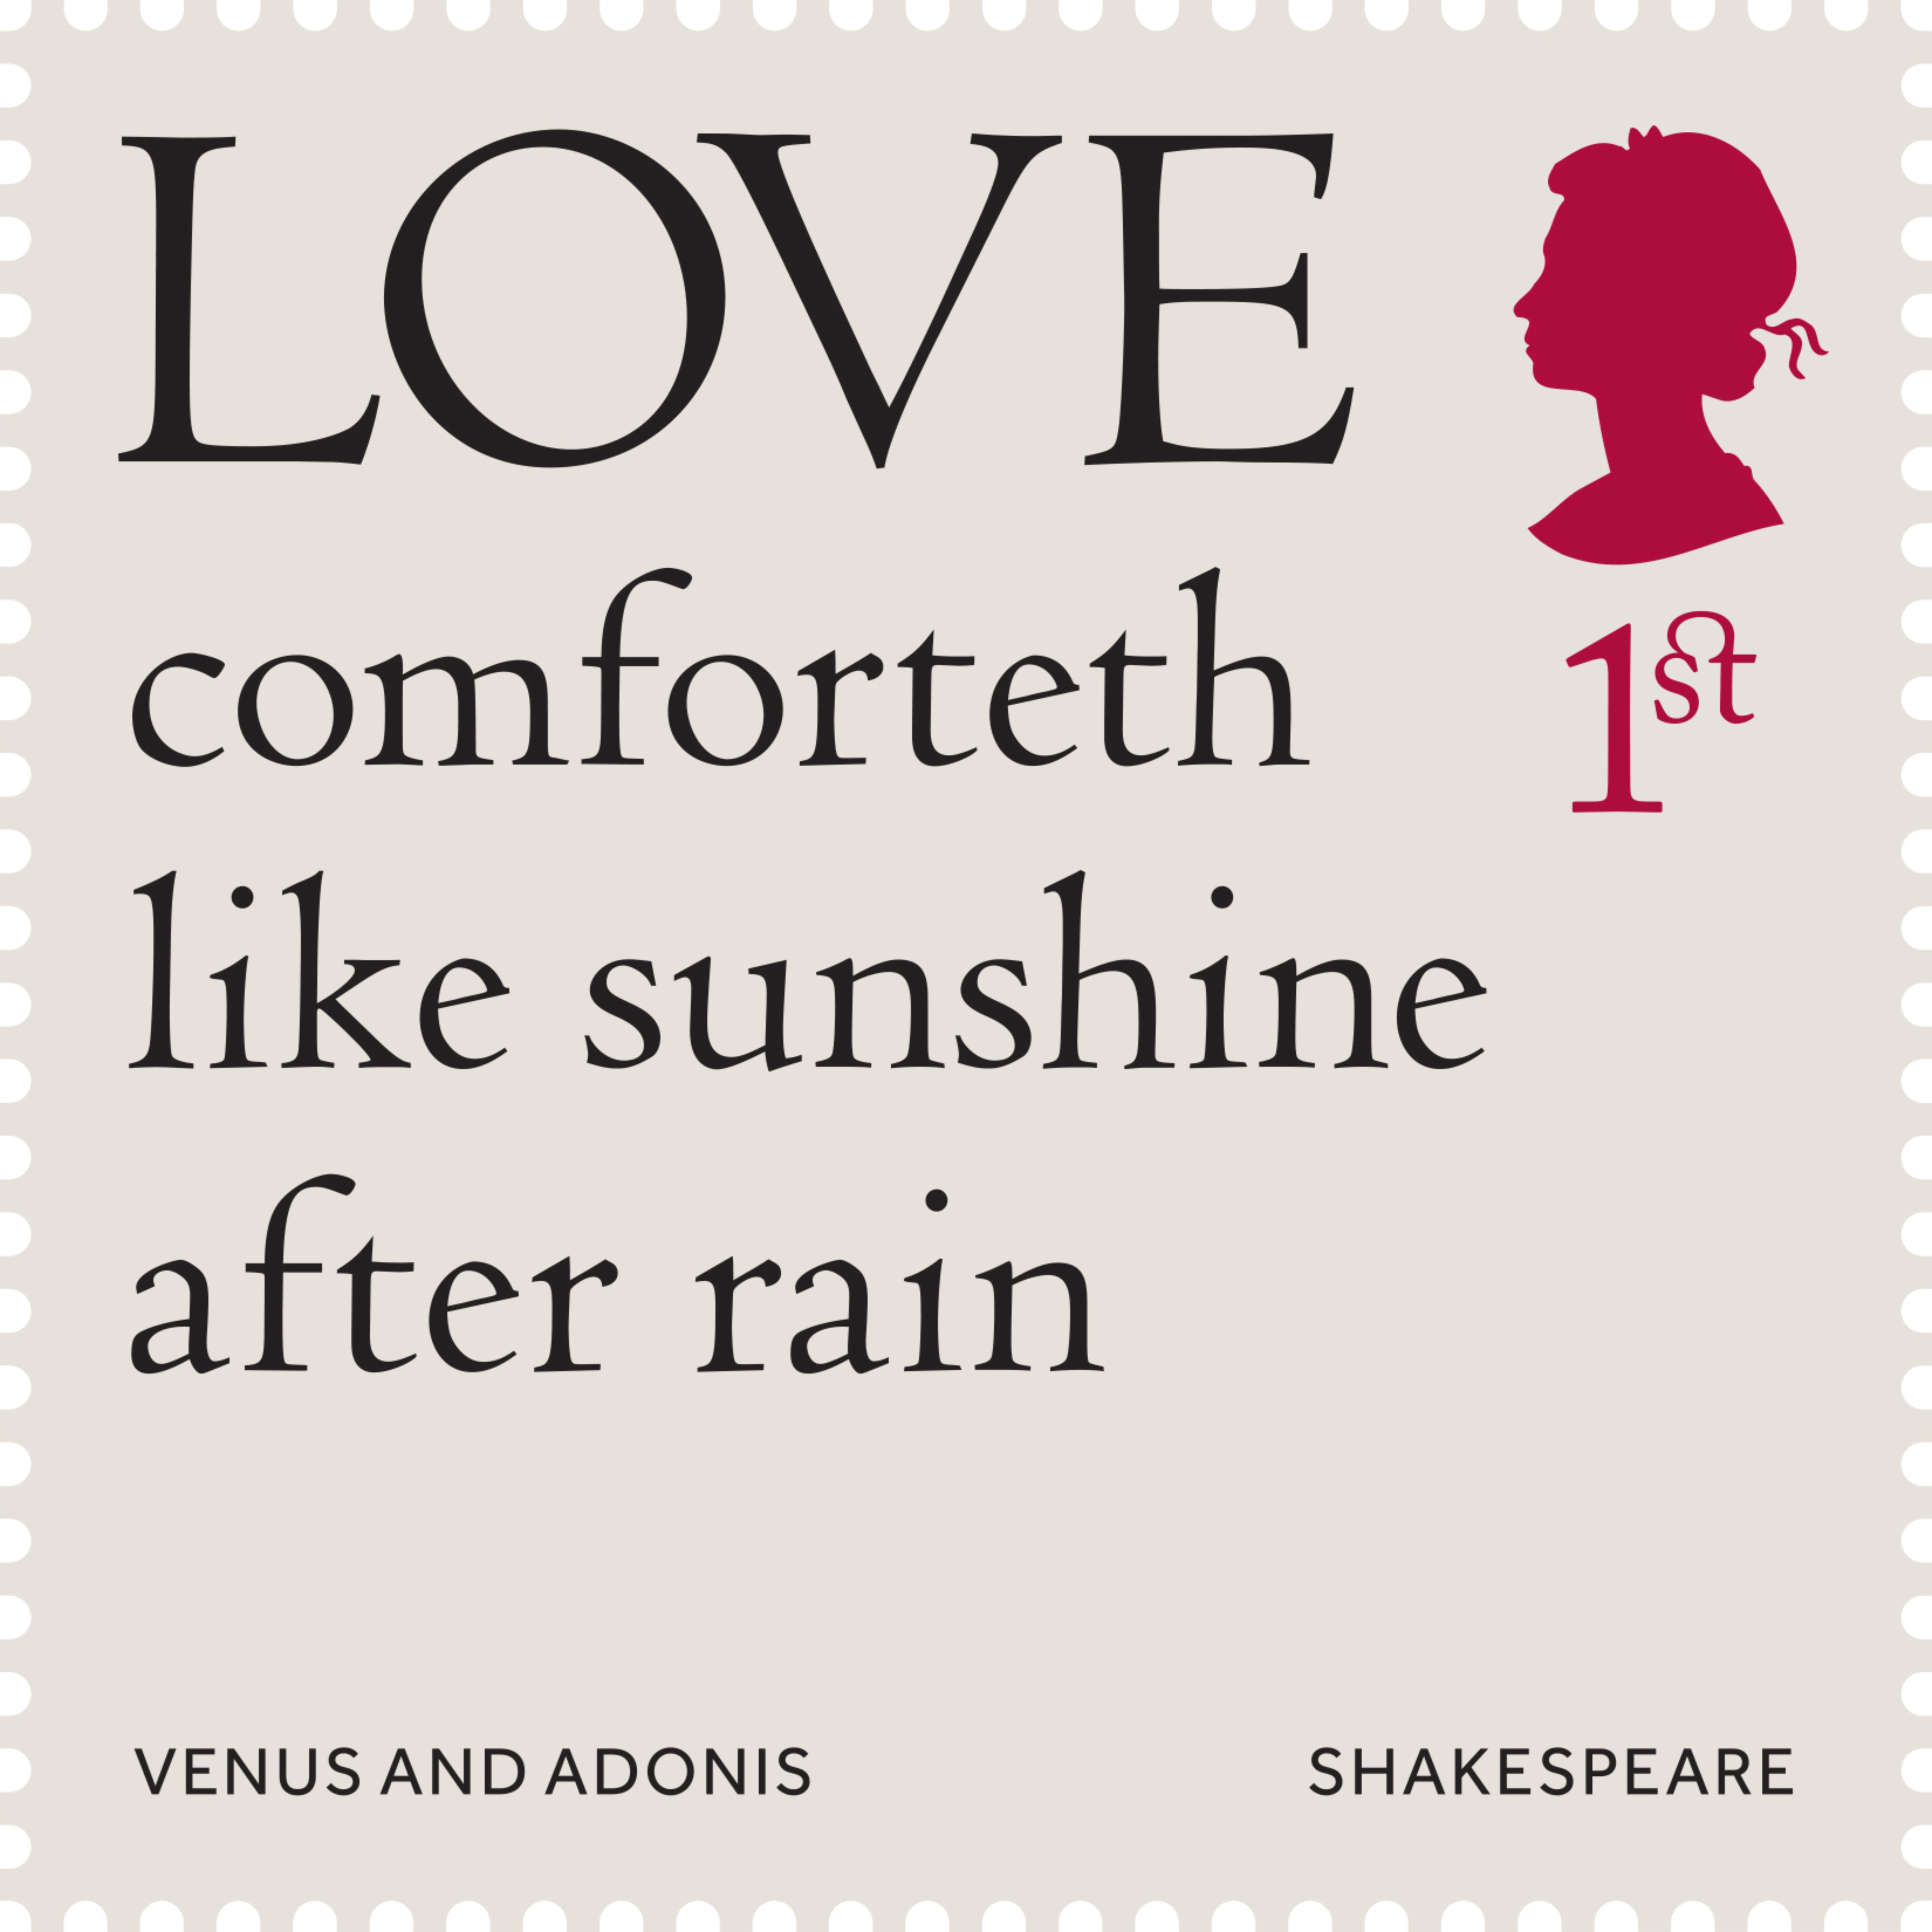 Shakespeare Quotes About Love New Shakespeare Stamps Feature Quotes From The Bard  Design Week